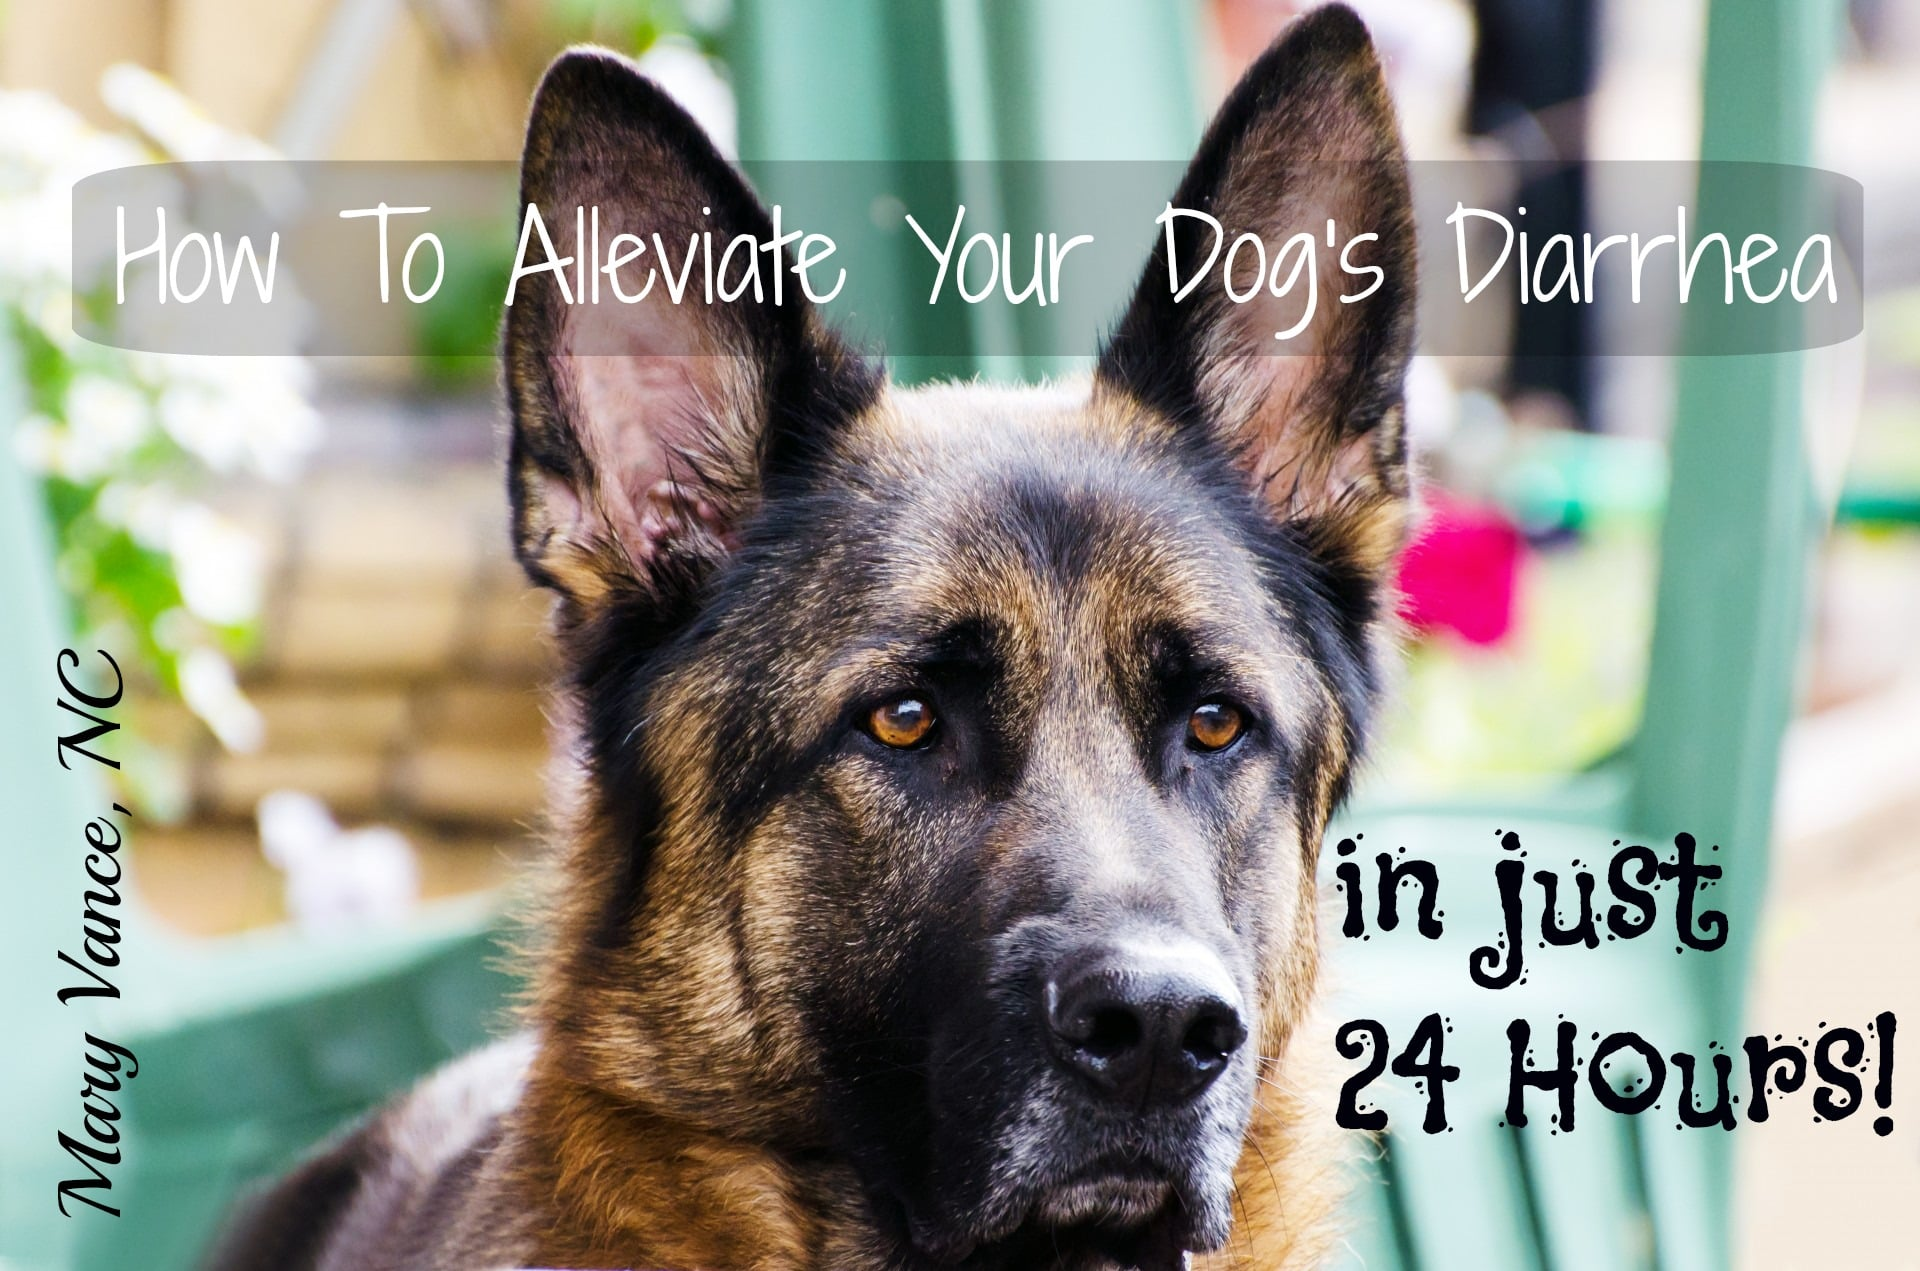 How to Alleviate Your Dog's Diarrhea in 24 Hours - Mary